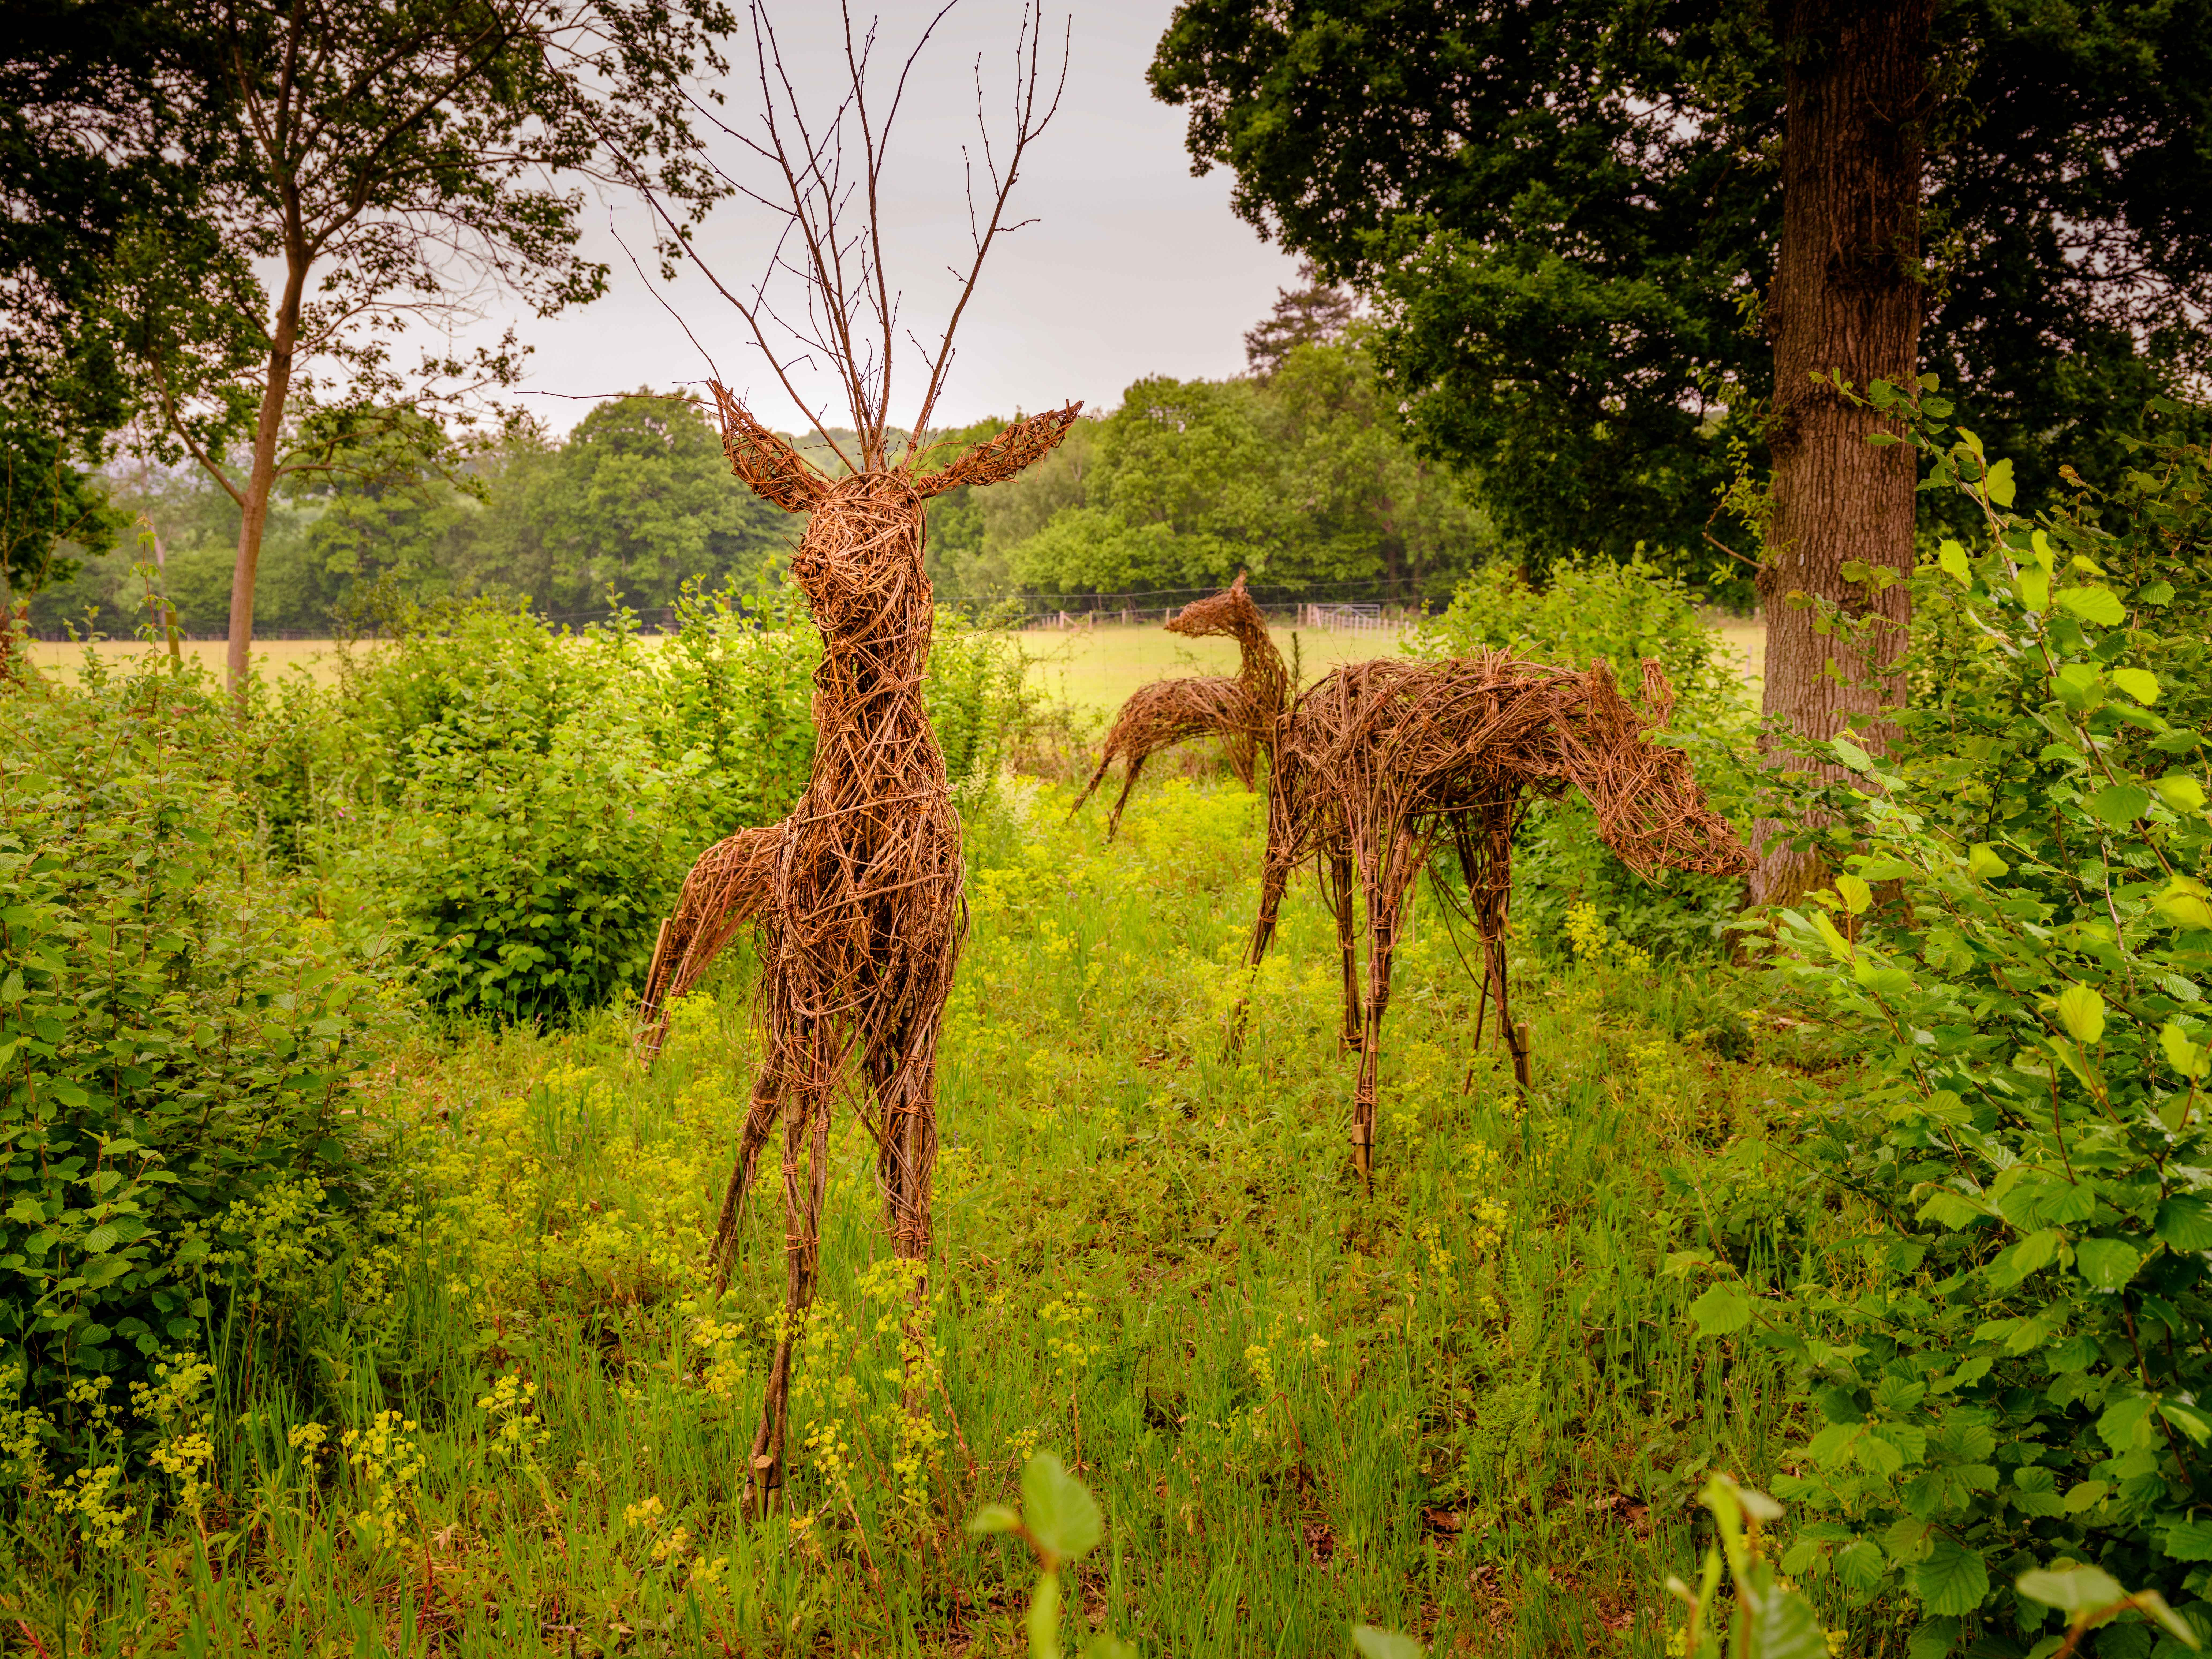 Hazel's flexible stems used to produce ornamental deer at Wakehurst. Credit: Jim Holden/RBG Kew.